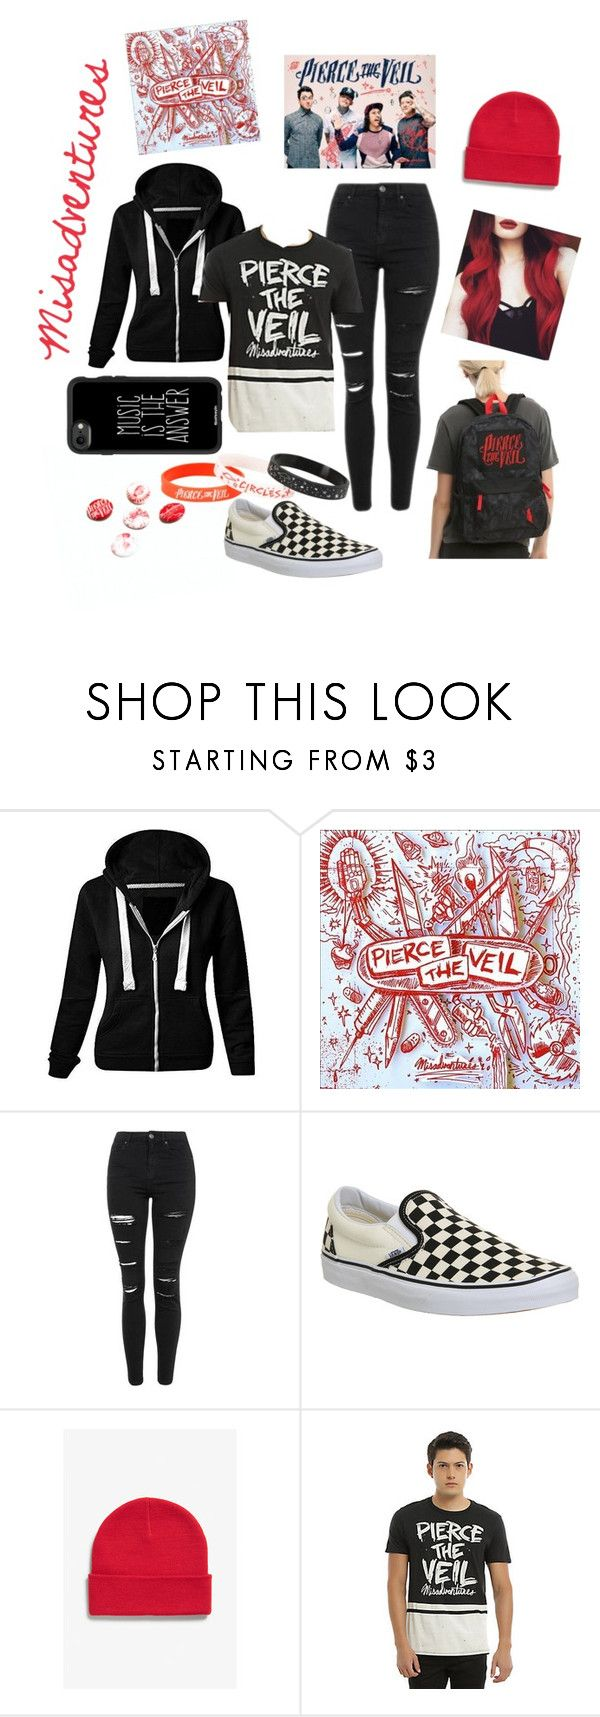 """""""Pierce The Veil - Misadventures"""" by dayna-eichenser ❤ liked on Polyvore featuring Topshop, Vans, Monki and Casetify"""